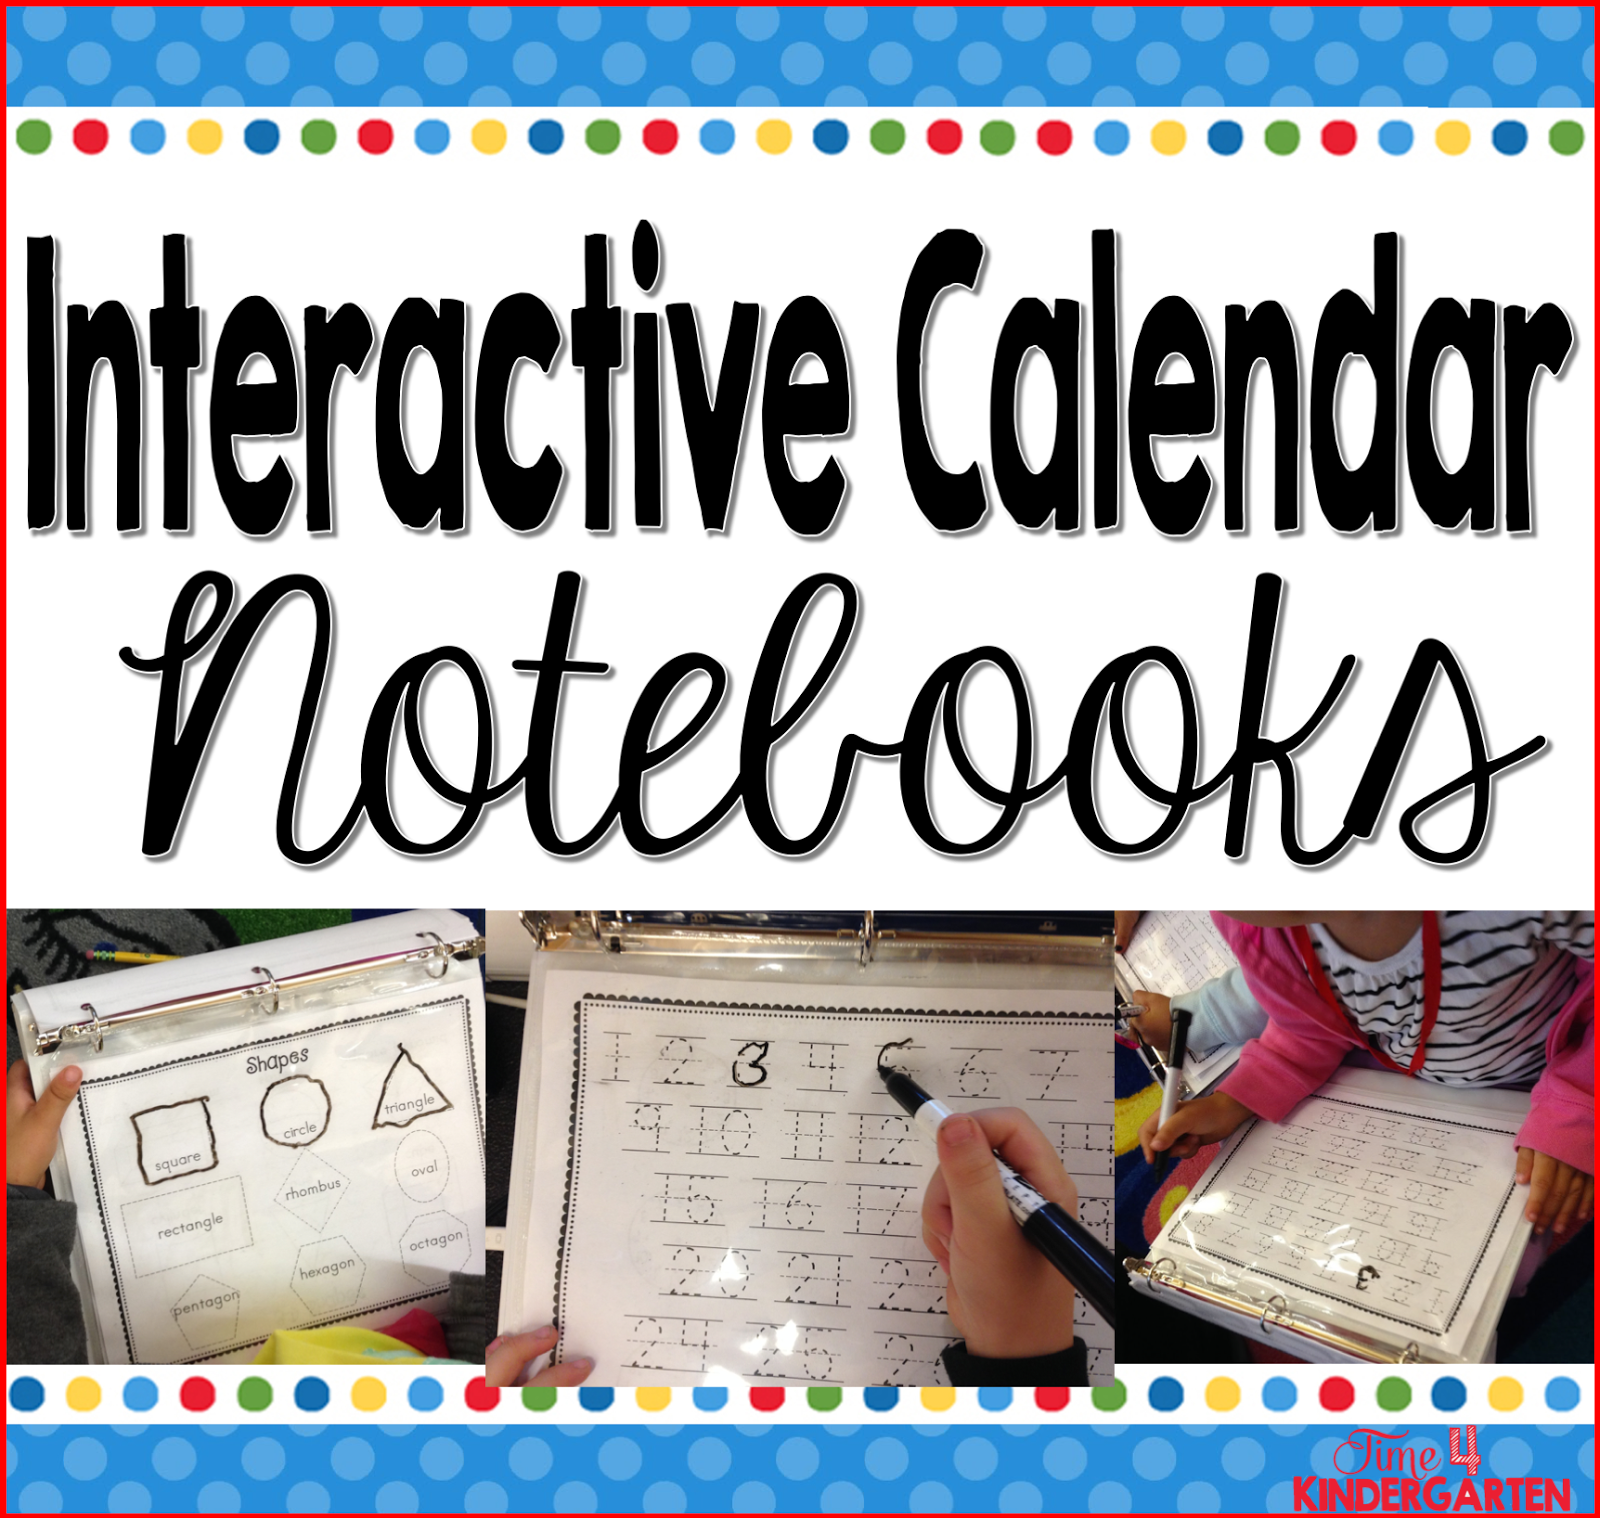 Why You Should Use Interactive Calendar Notebooks